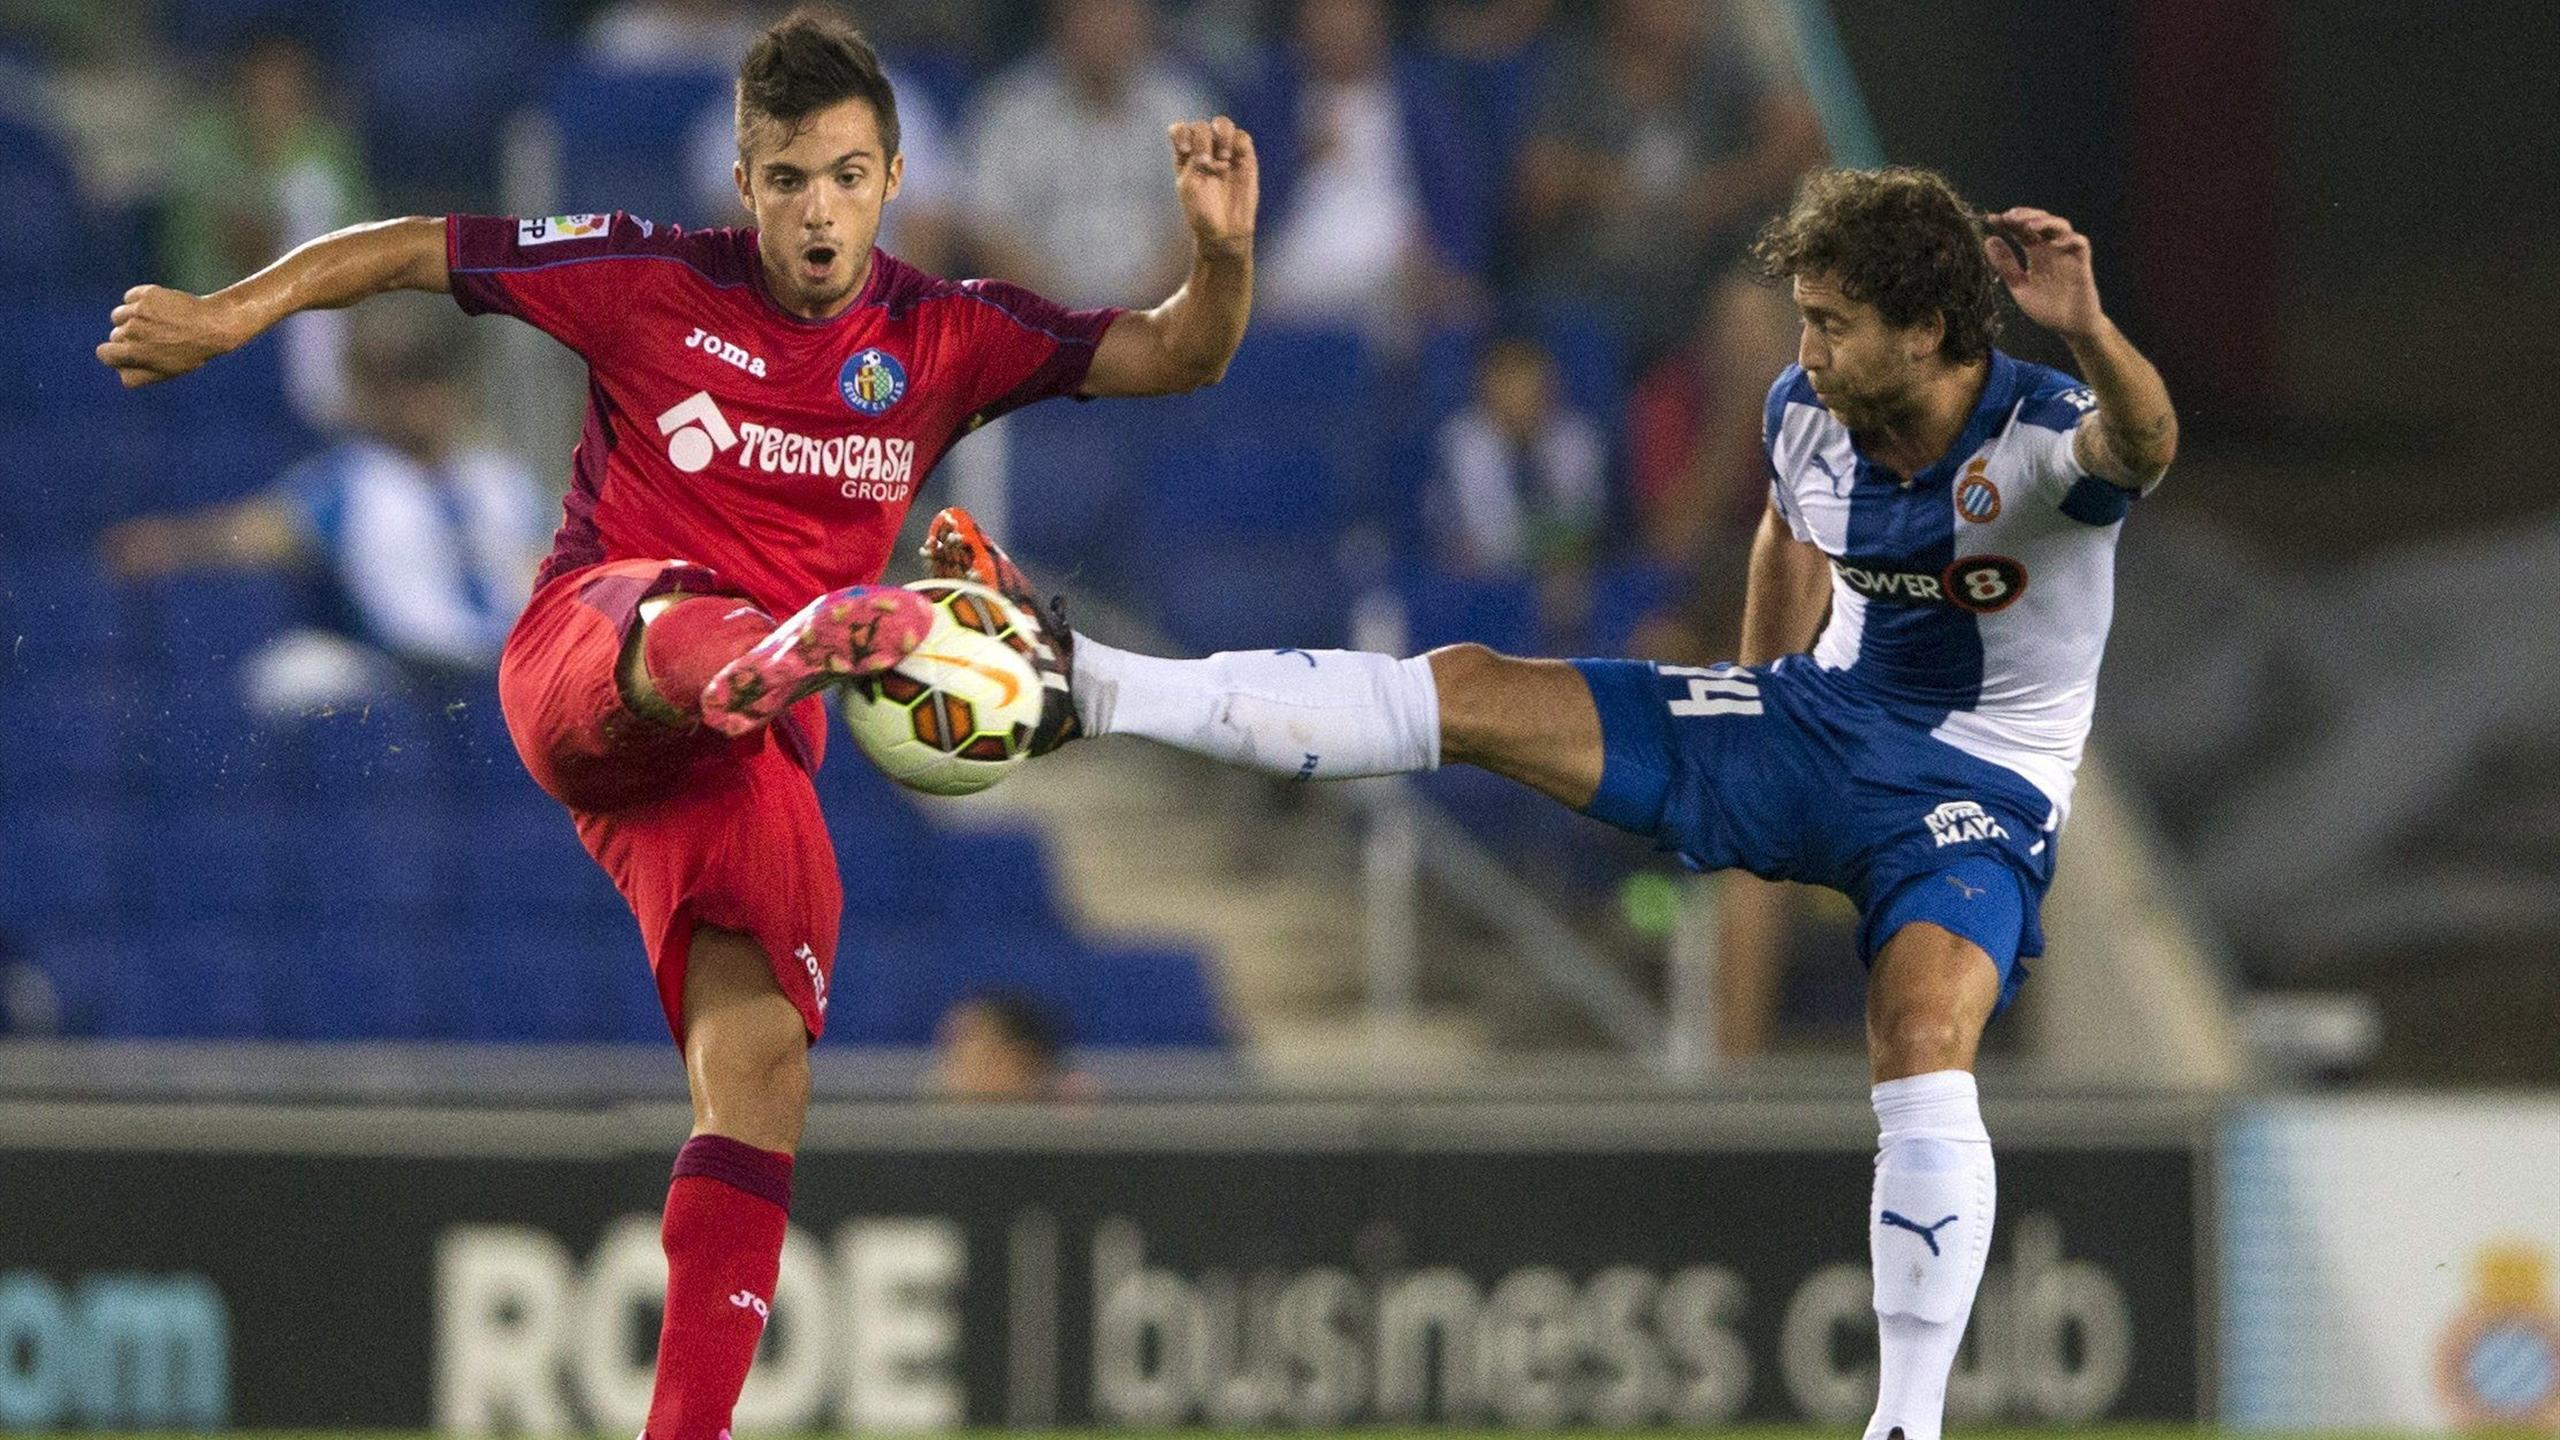 Video: Espanyol vs Getafe